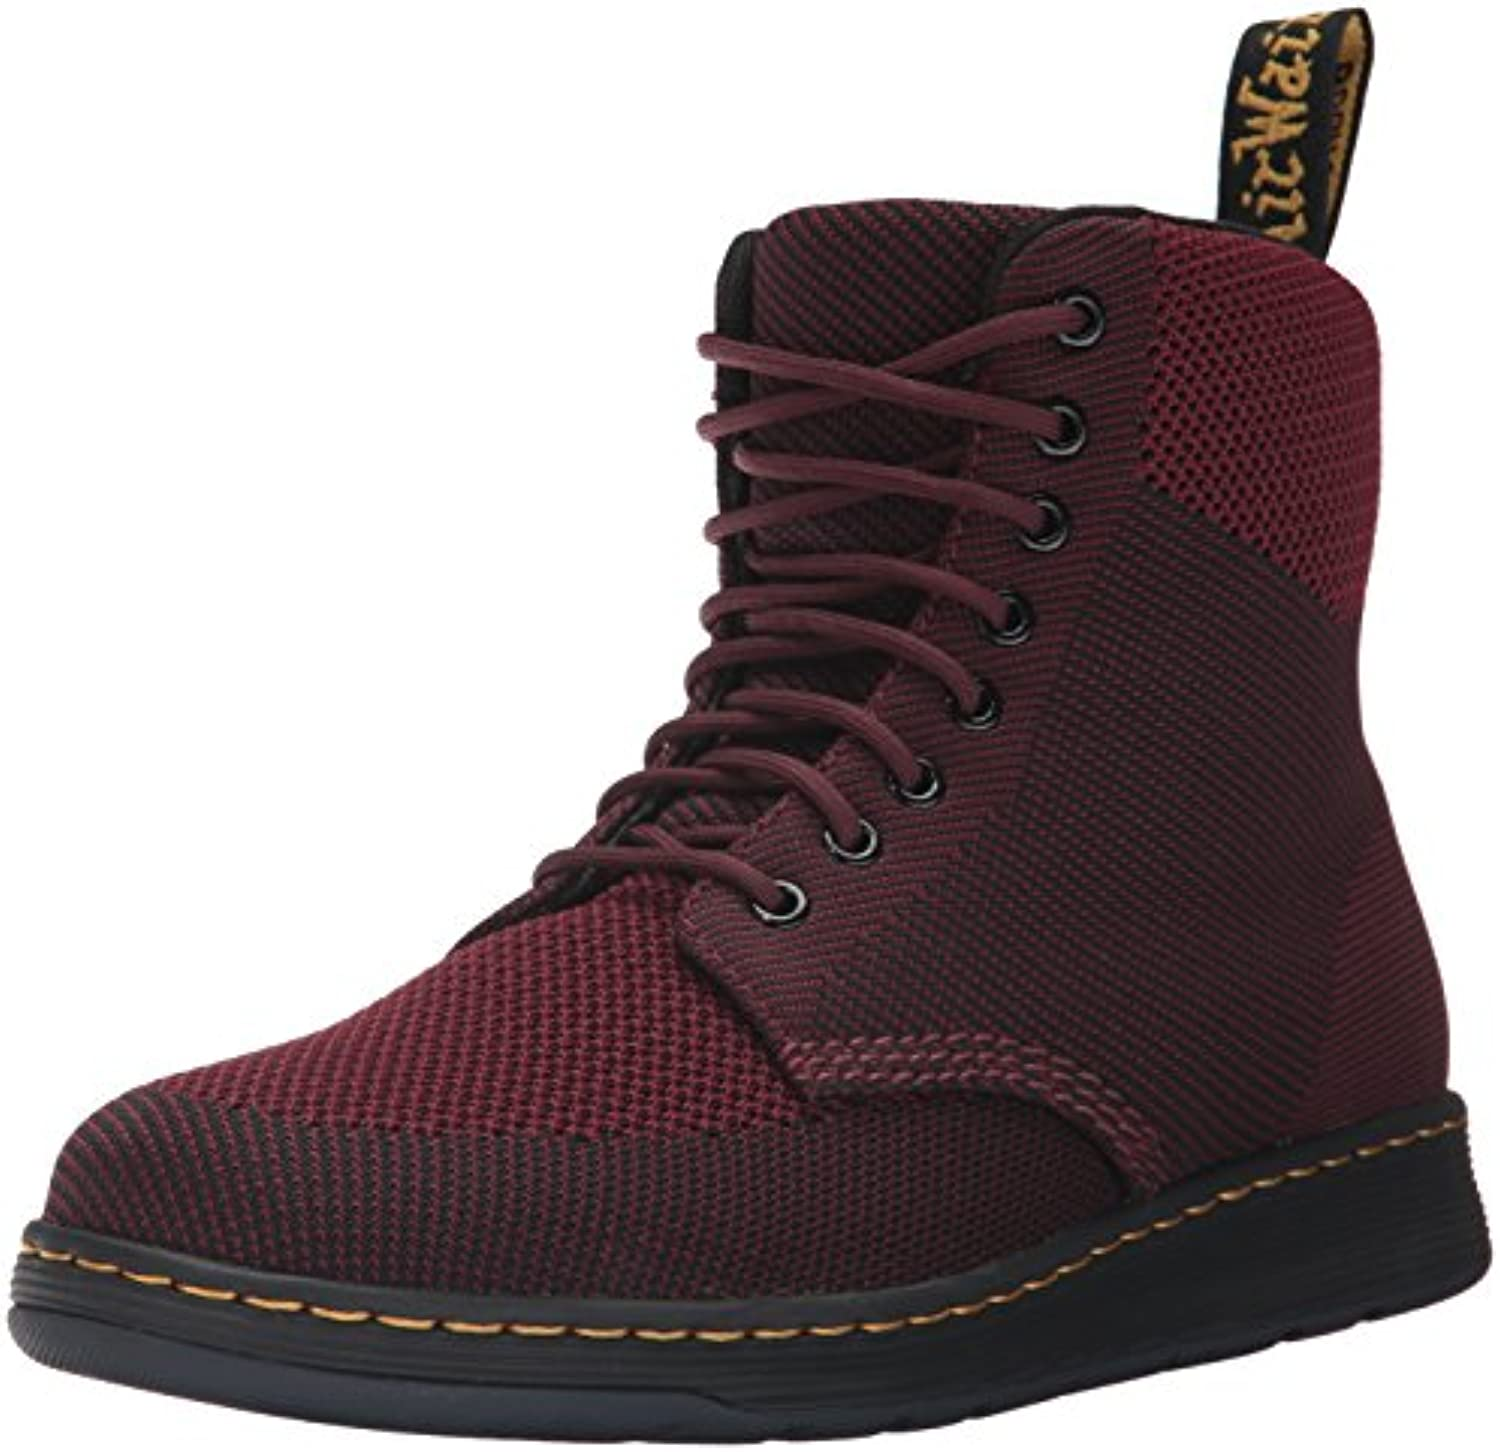 Dr.Martens Womens Rigal Knit Textile Boots